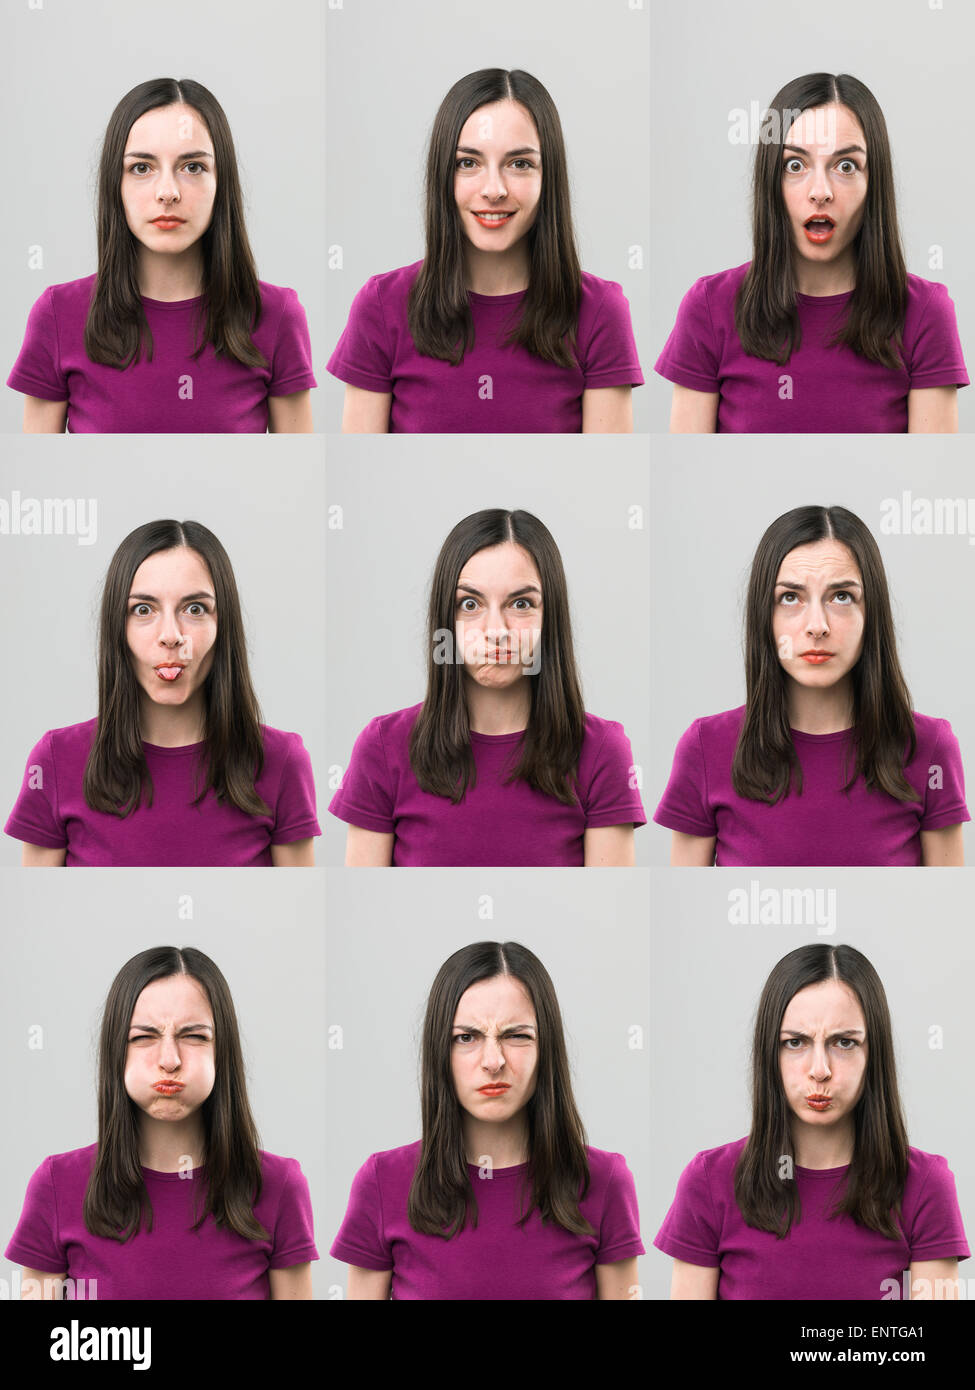 young woman making different faces. digital composite image - Stock Image